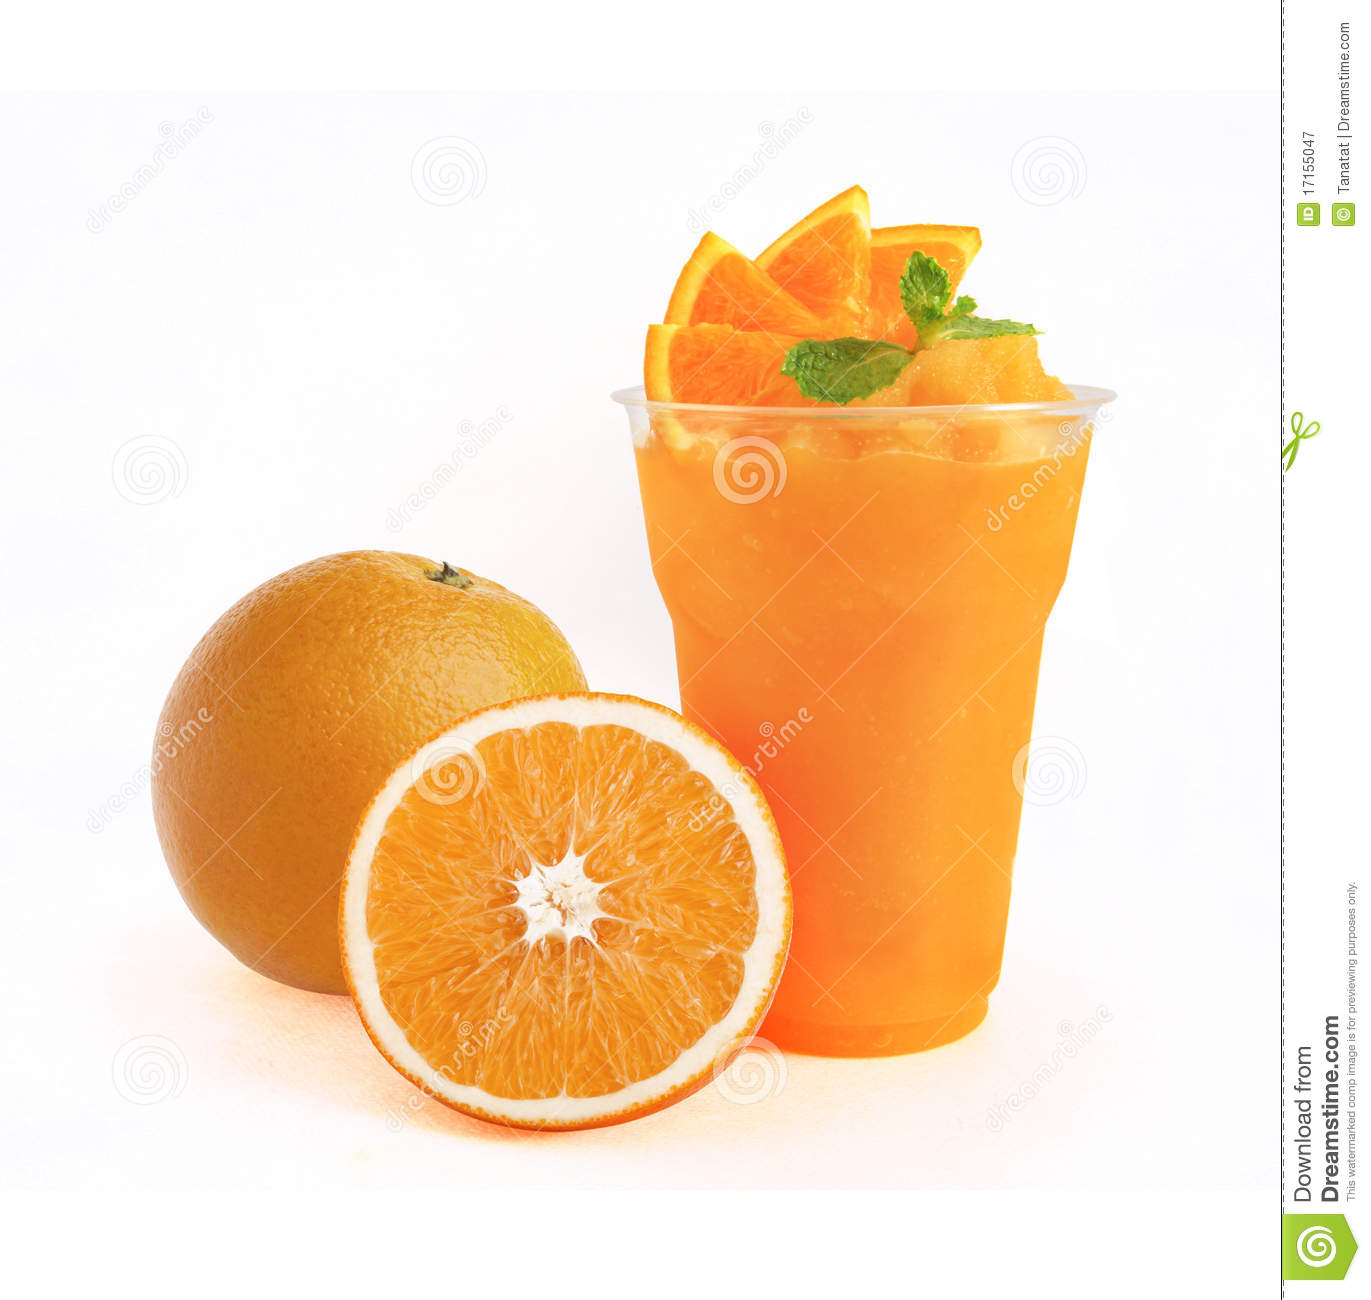 Tropical Fruit Smoothie Tropical Fruit Smoothie new pictures